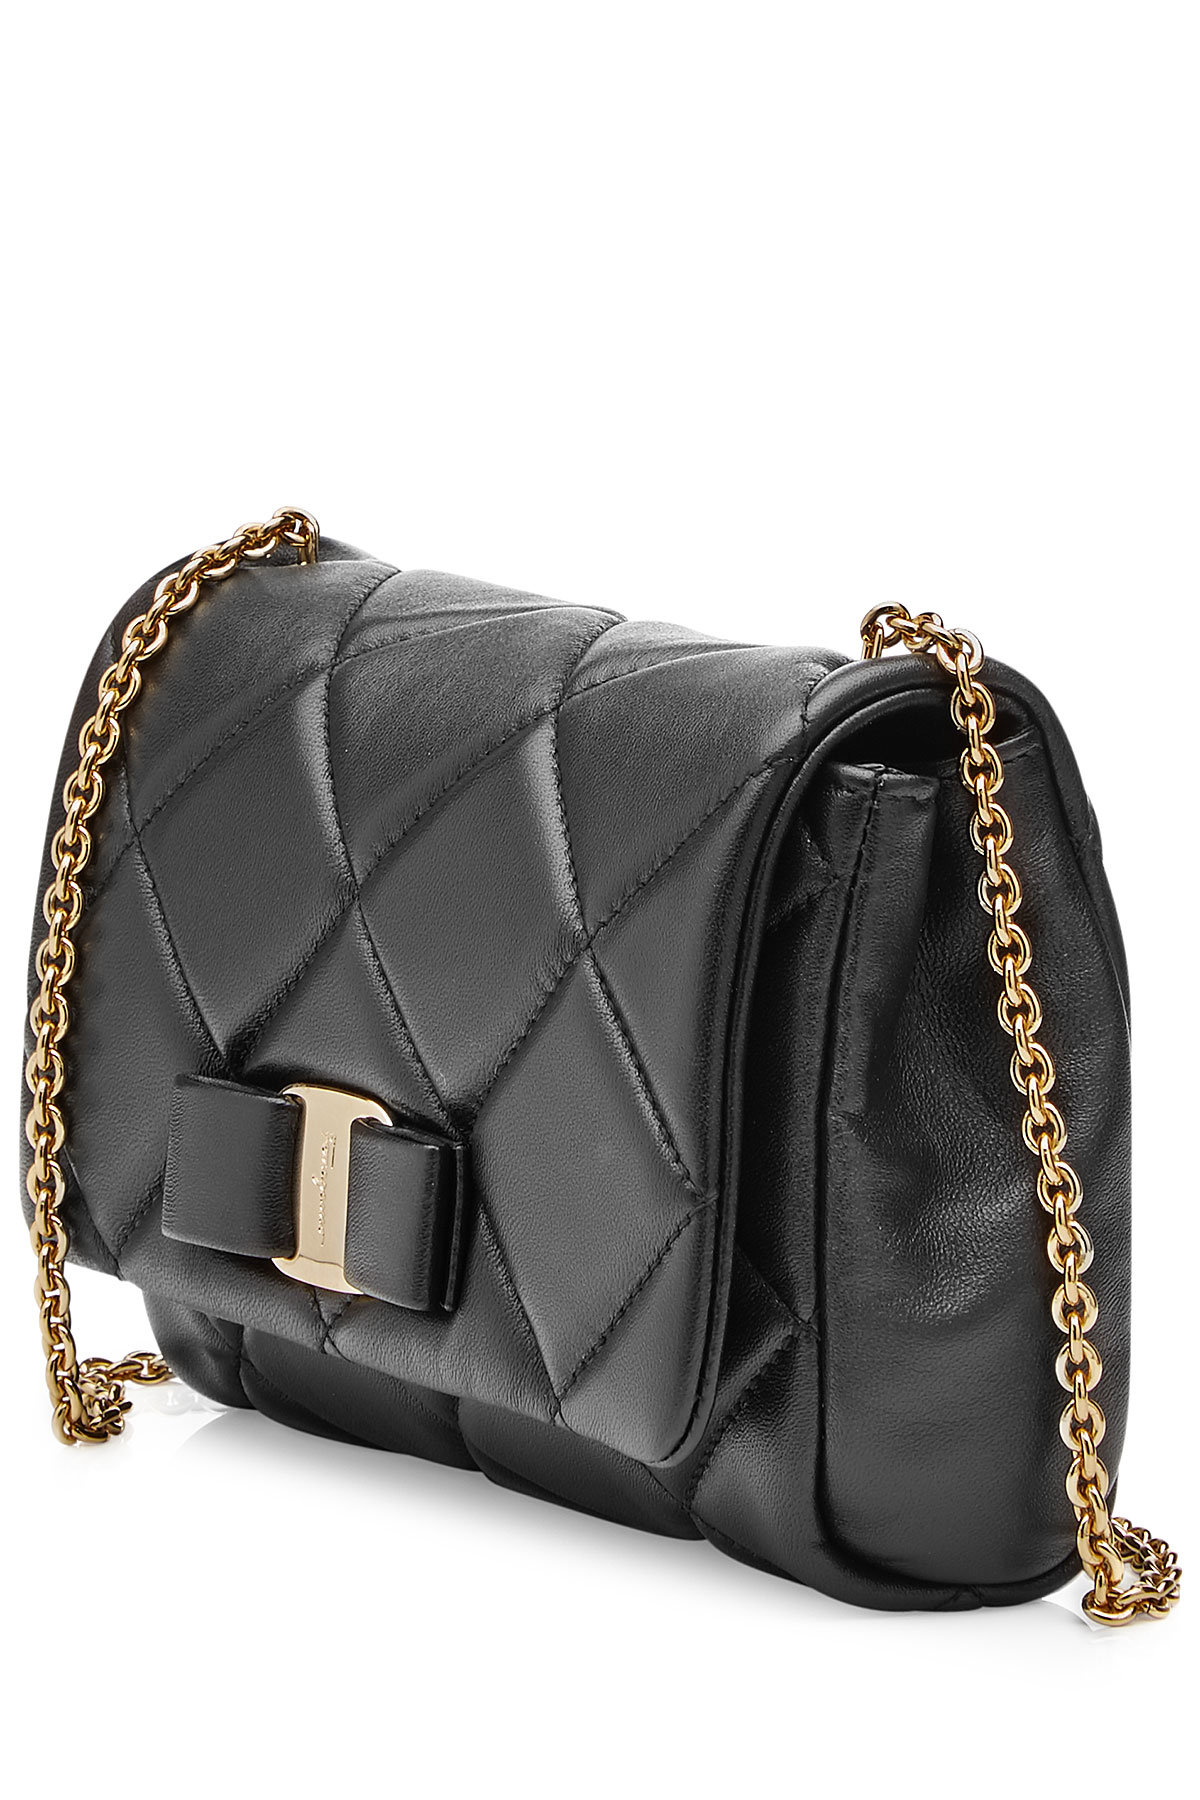 Ferragamo Small Gelly Quilted Leather Shoulder Bag Black